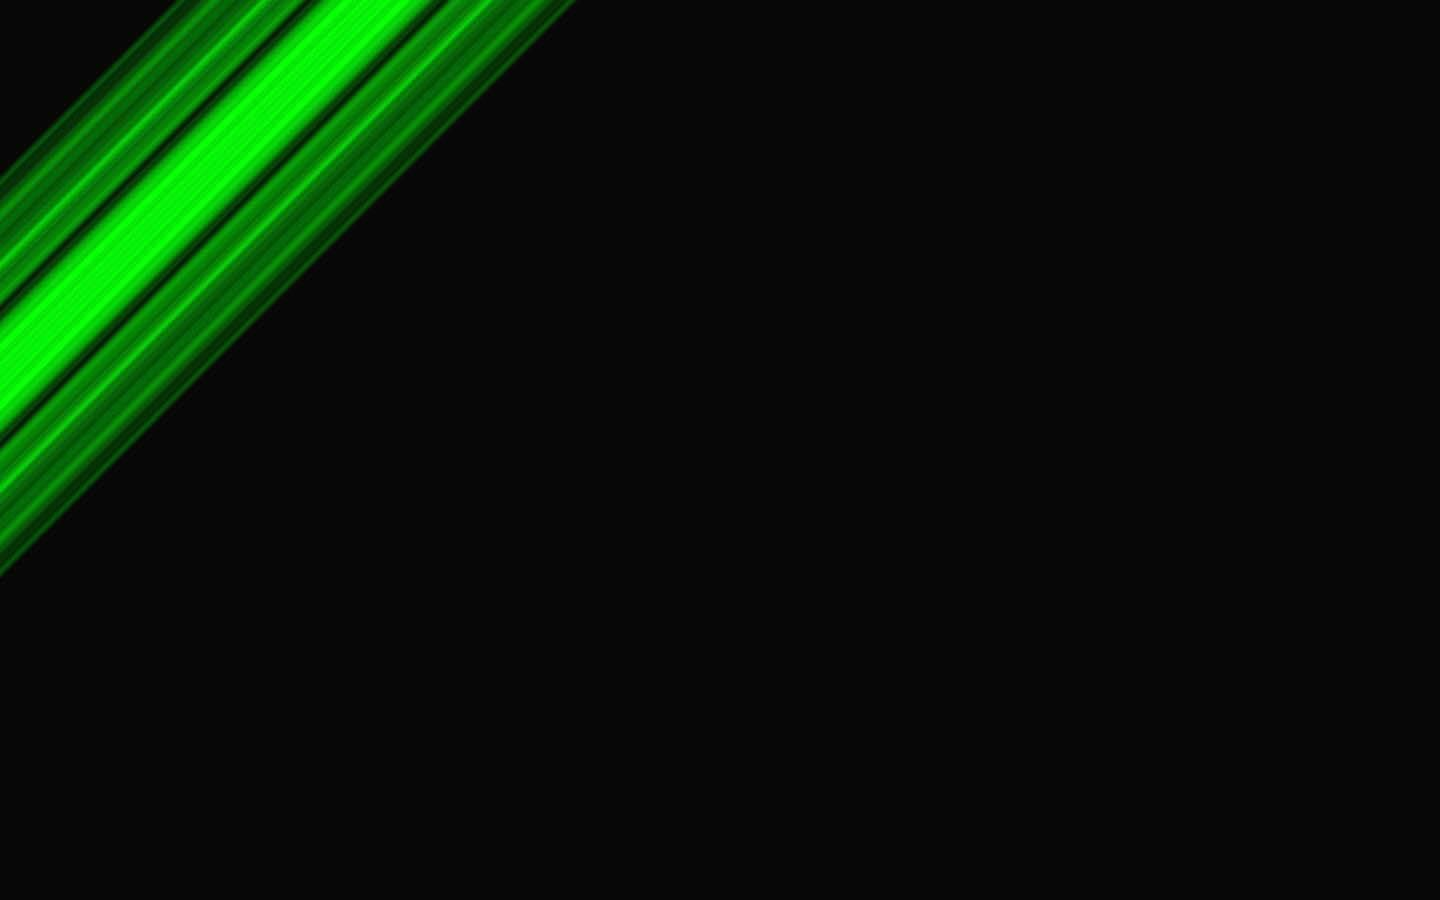 green and black abstract wallpaper wallpapersafari